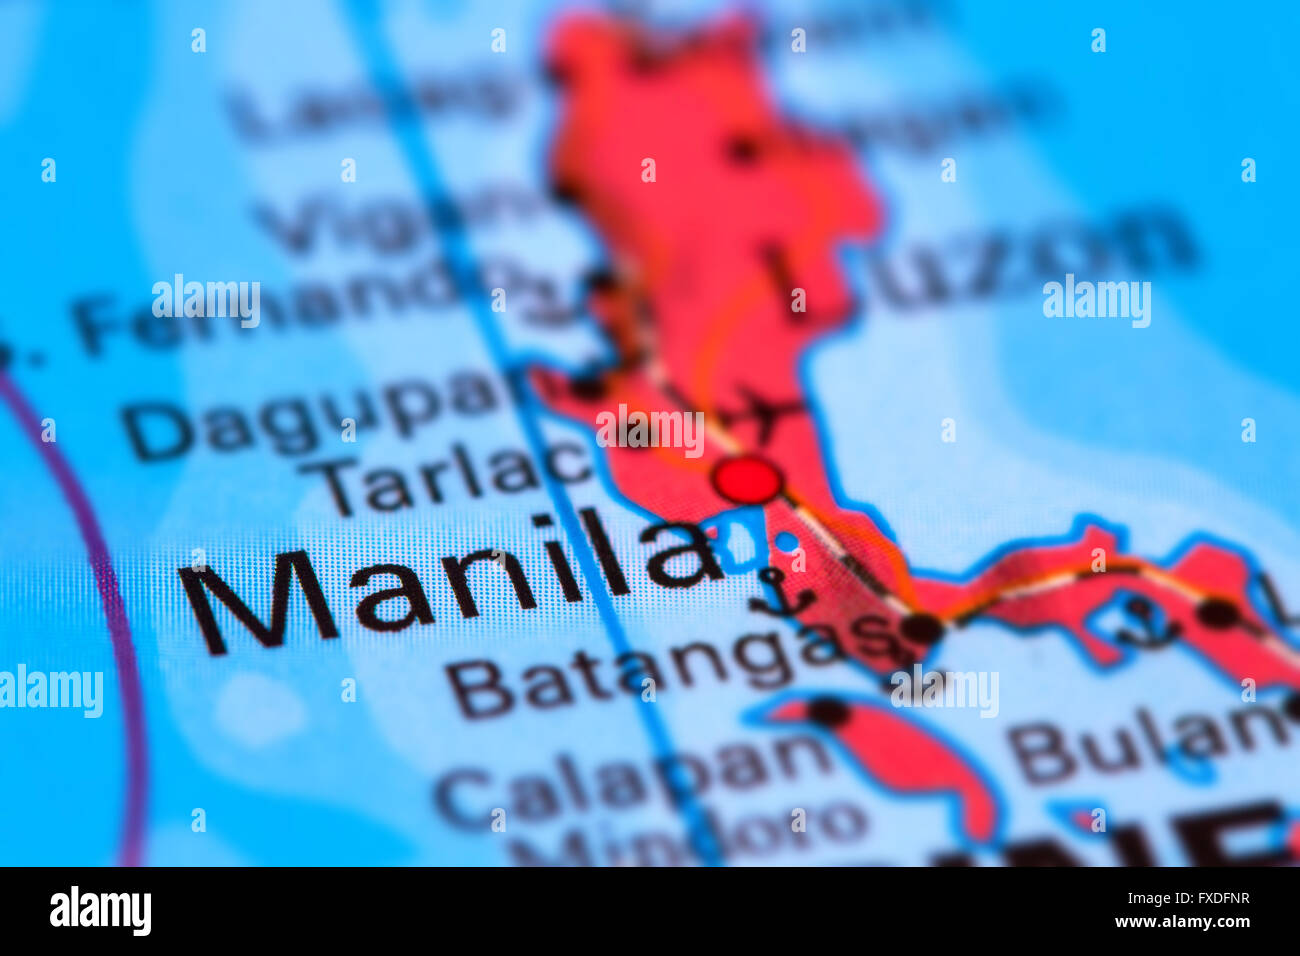 Manila, Capital City of the Philippines on the World Map - Stock Image